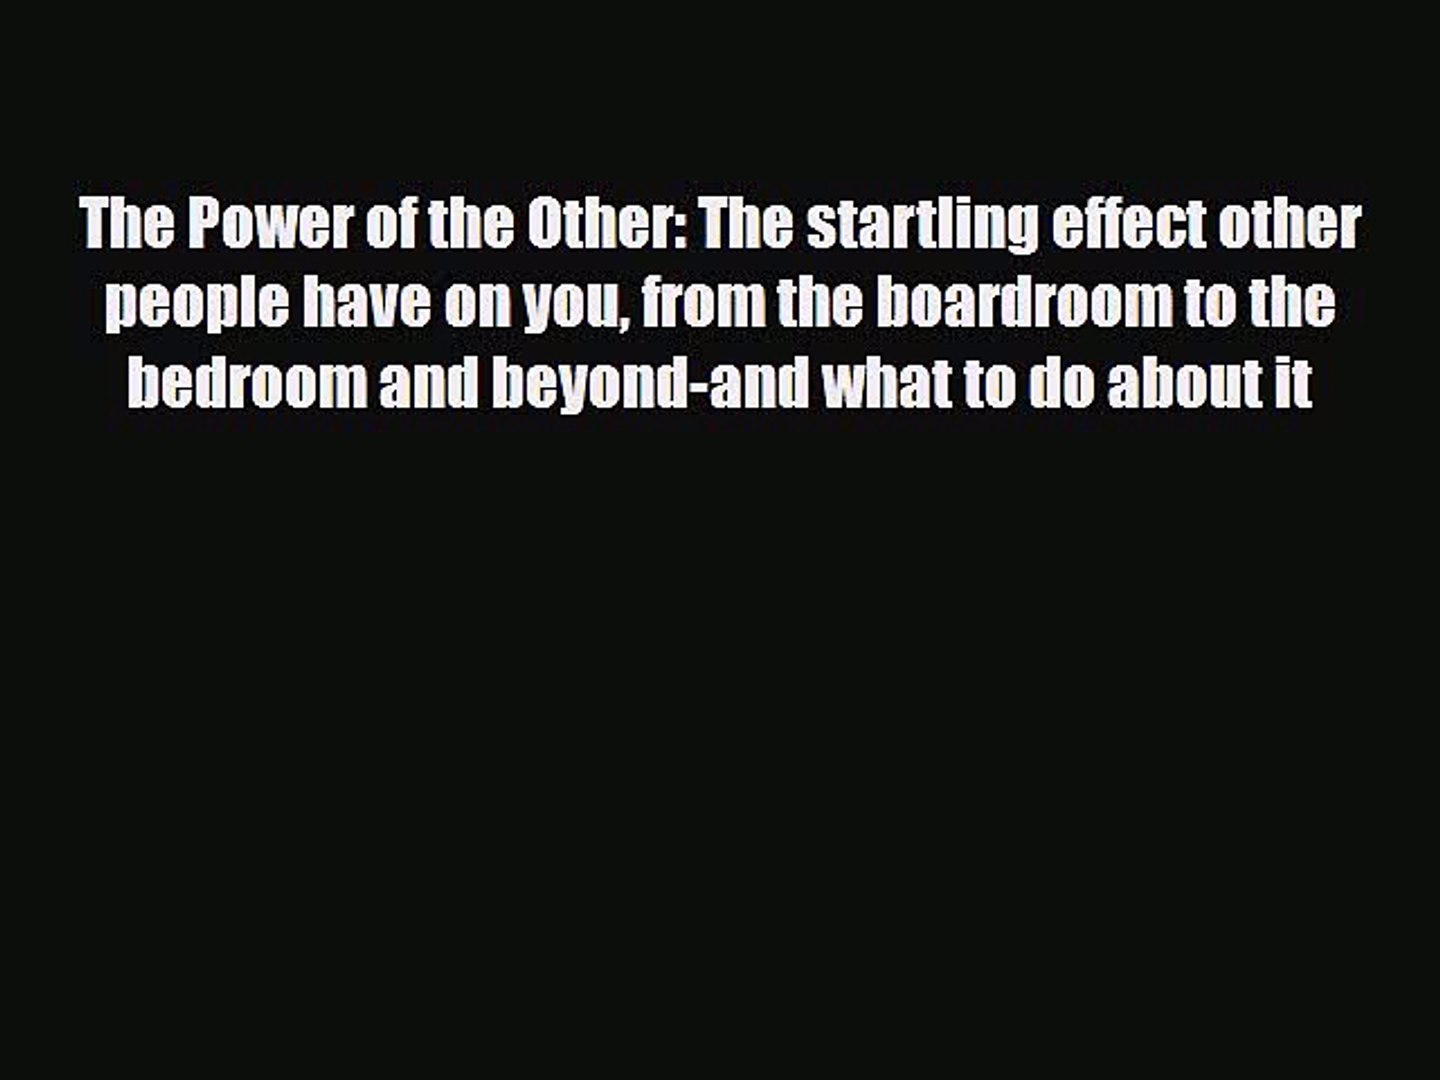 [Read] The Power of the Other: The startling effect other people have on you from the boardroom